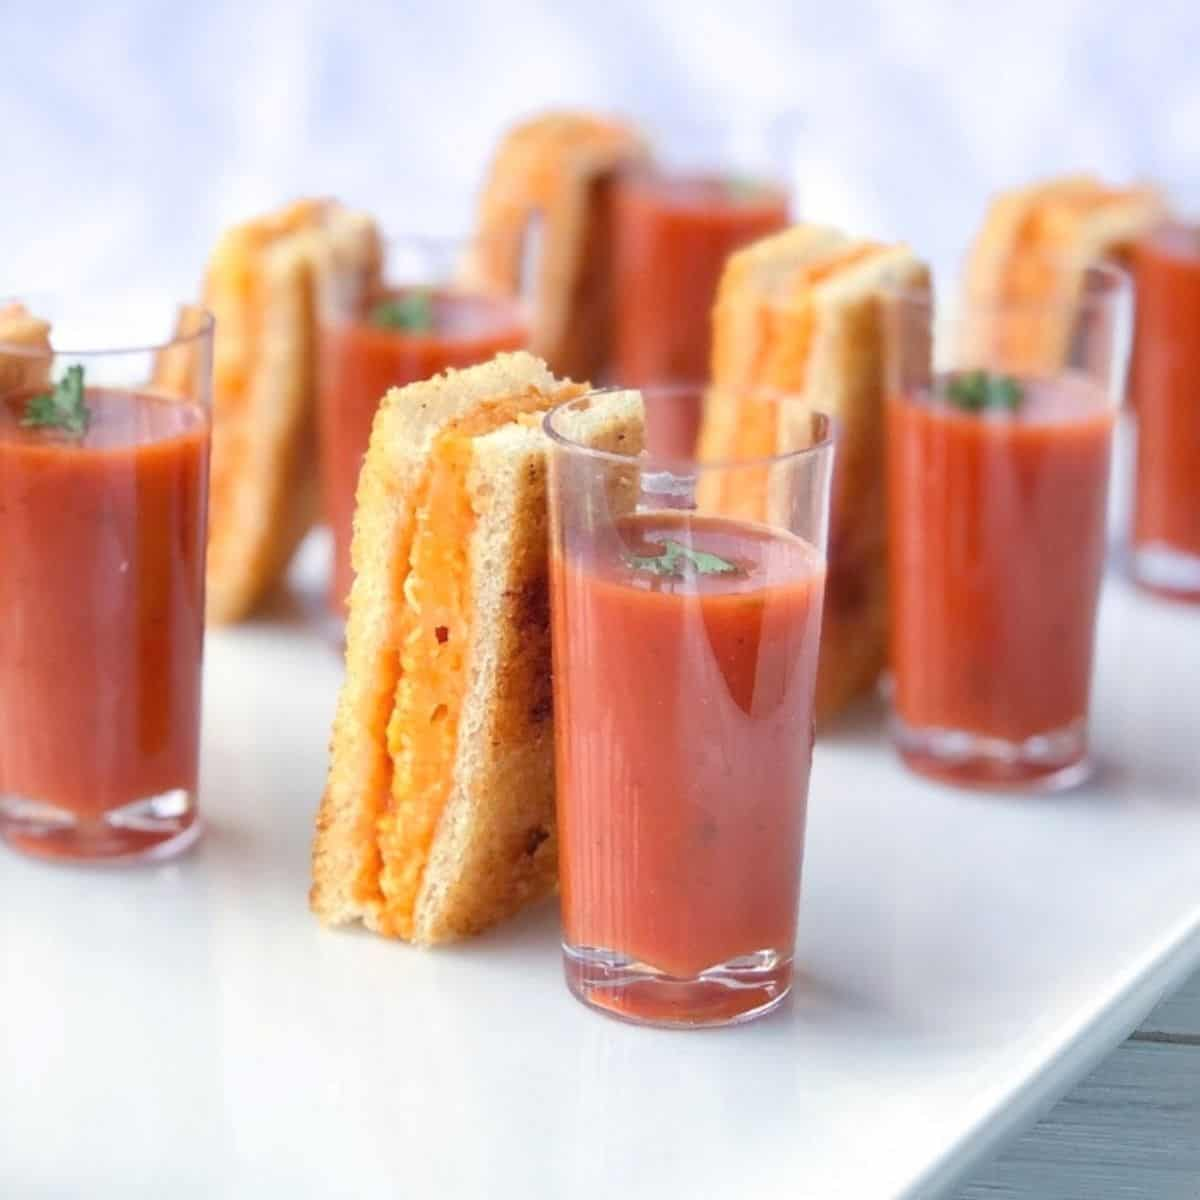 Grilled cheese sticks with tomato soup shooters on a plate.